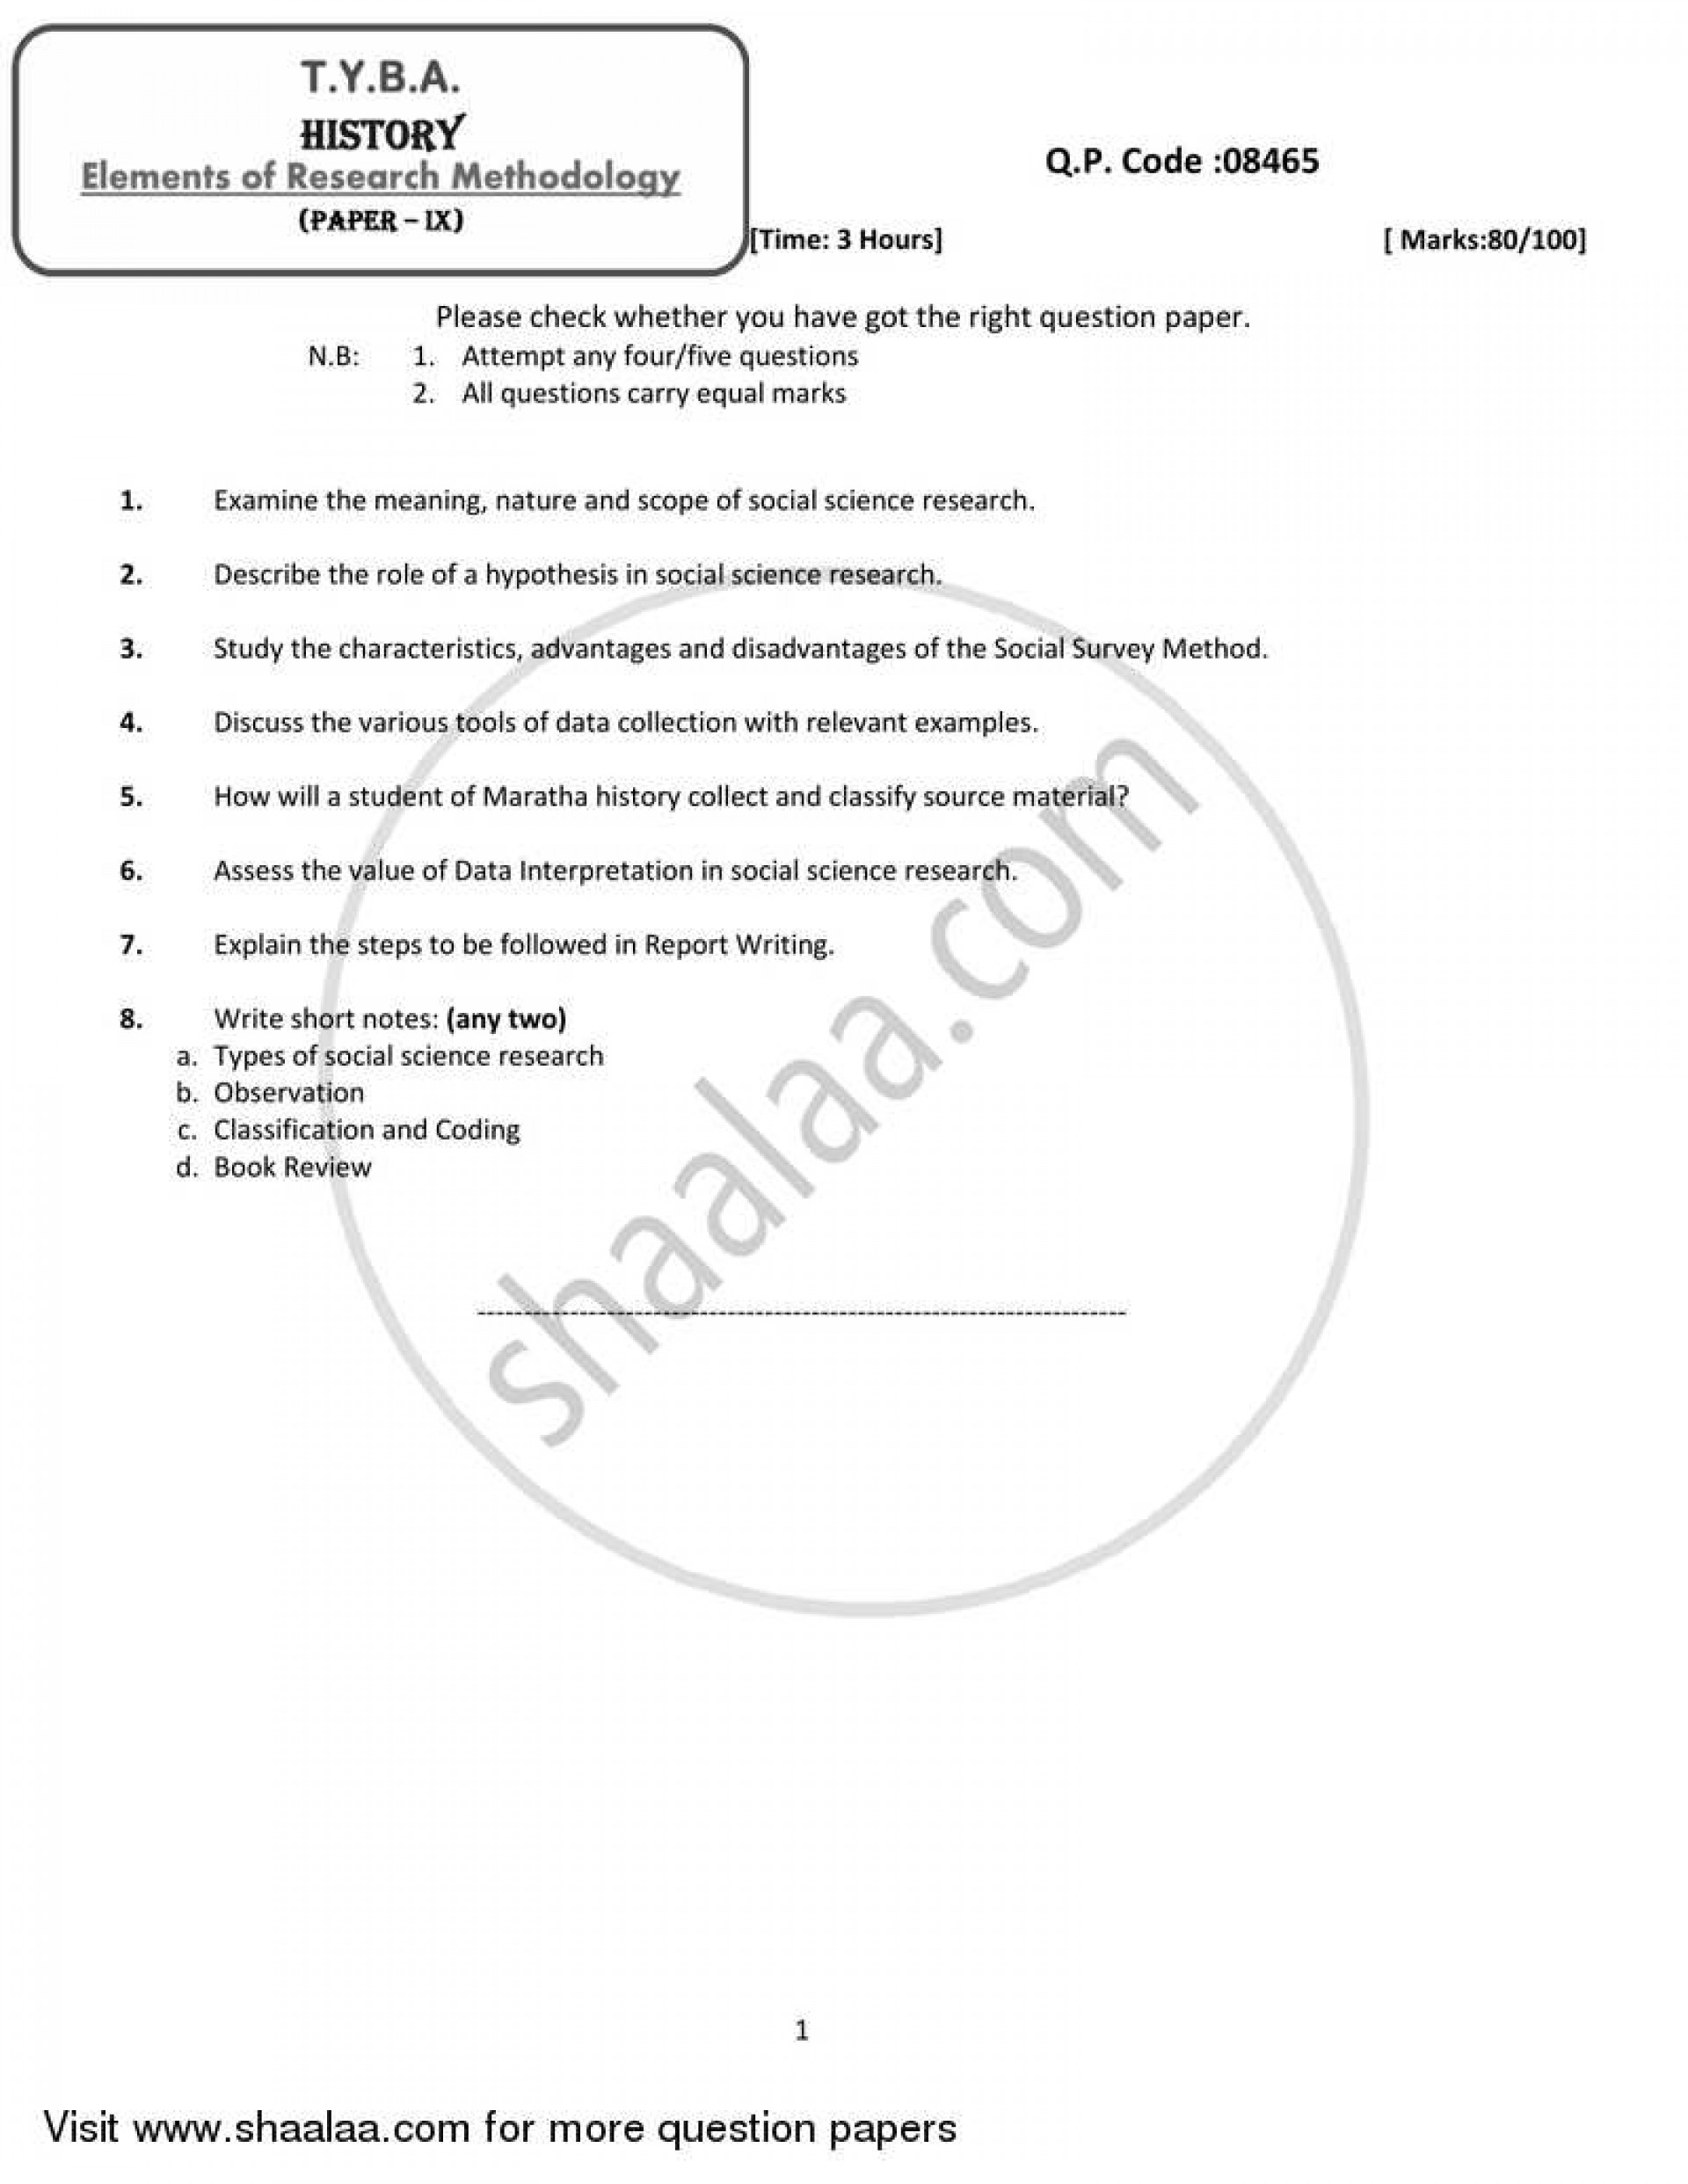 014 Hypothesis In Research Paper Pdf University Of Mumbai Bachelor Elements Methodology Ty History Yearly Pattern 3rd Year Tyba 2018 285cfda648e134cab9025052554be7cce Sensational Testing Example Null 1920